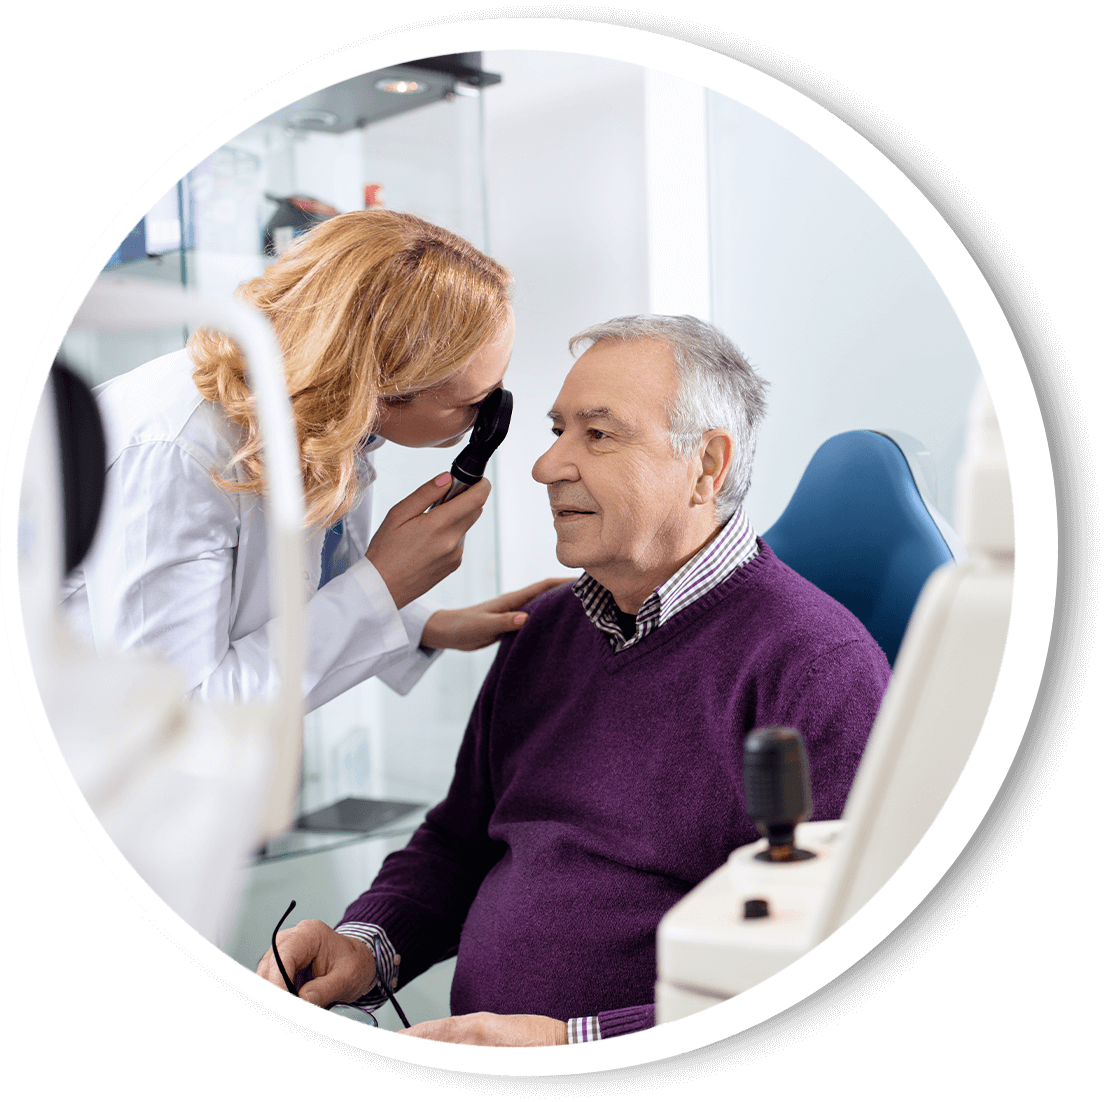 Older man getting his eye checked